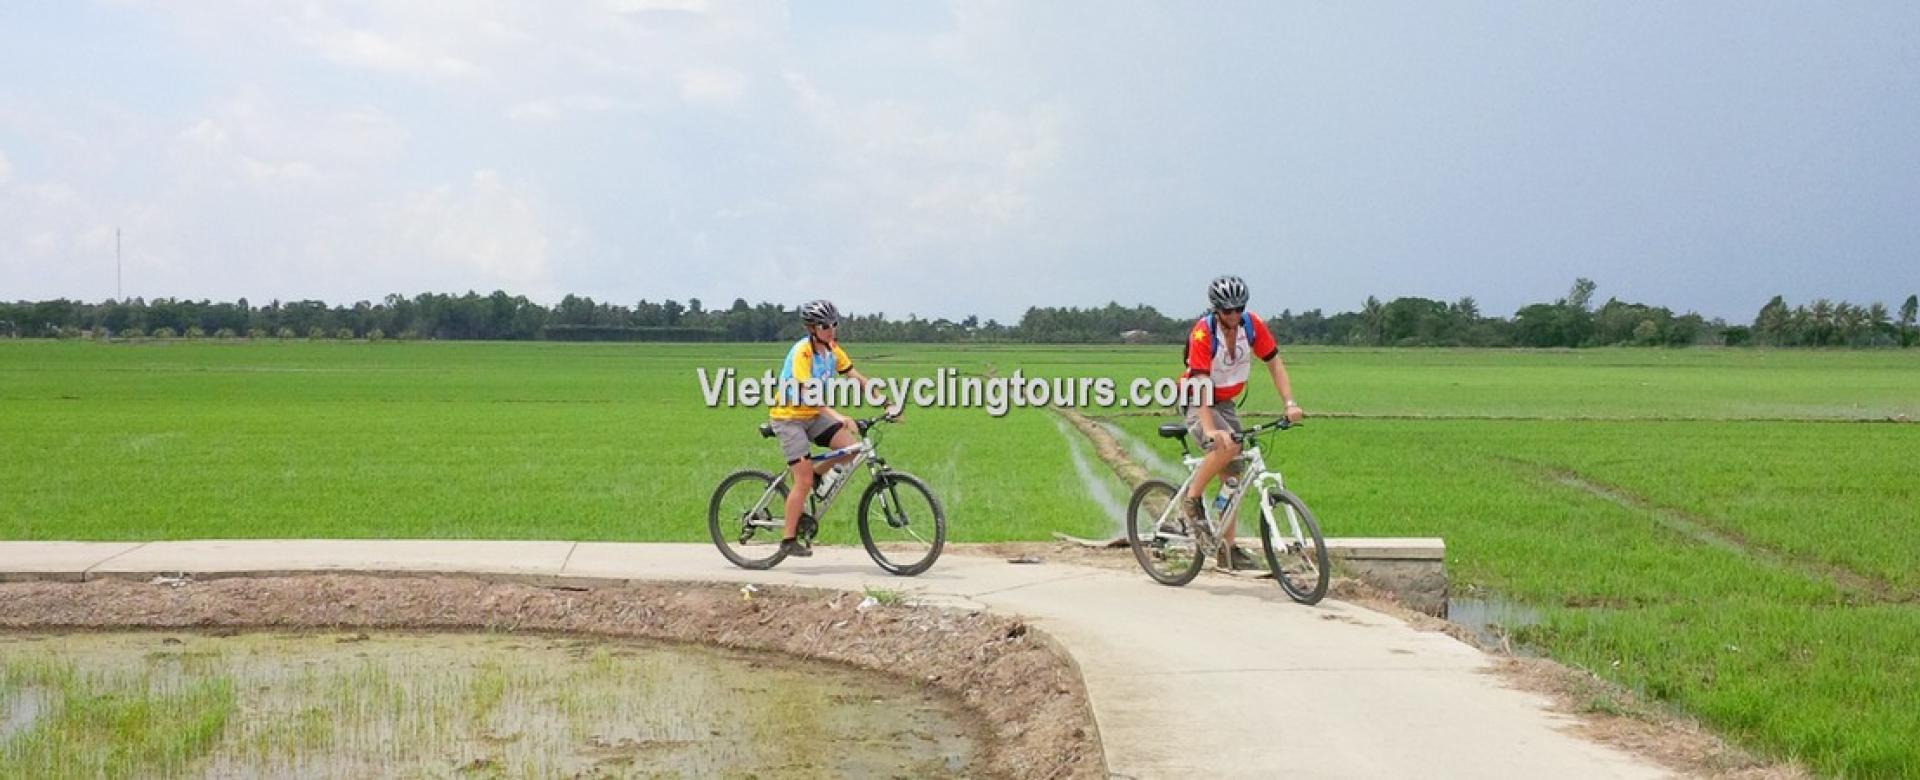 Vietnam Mekong Delta by bike - Cai Be - Vinh Long - Can Tho